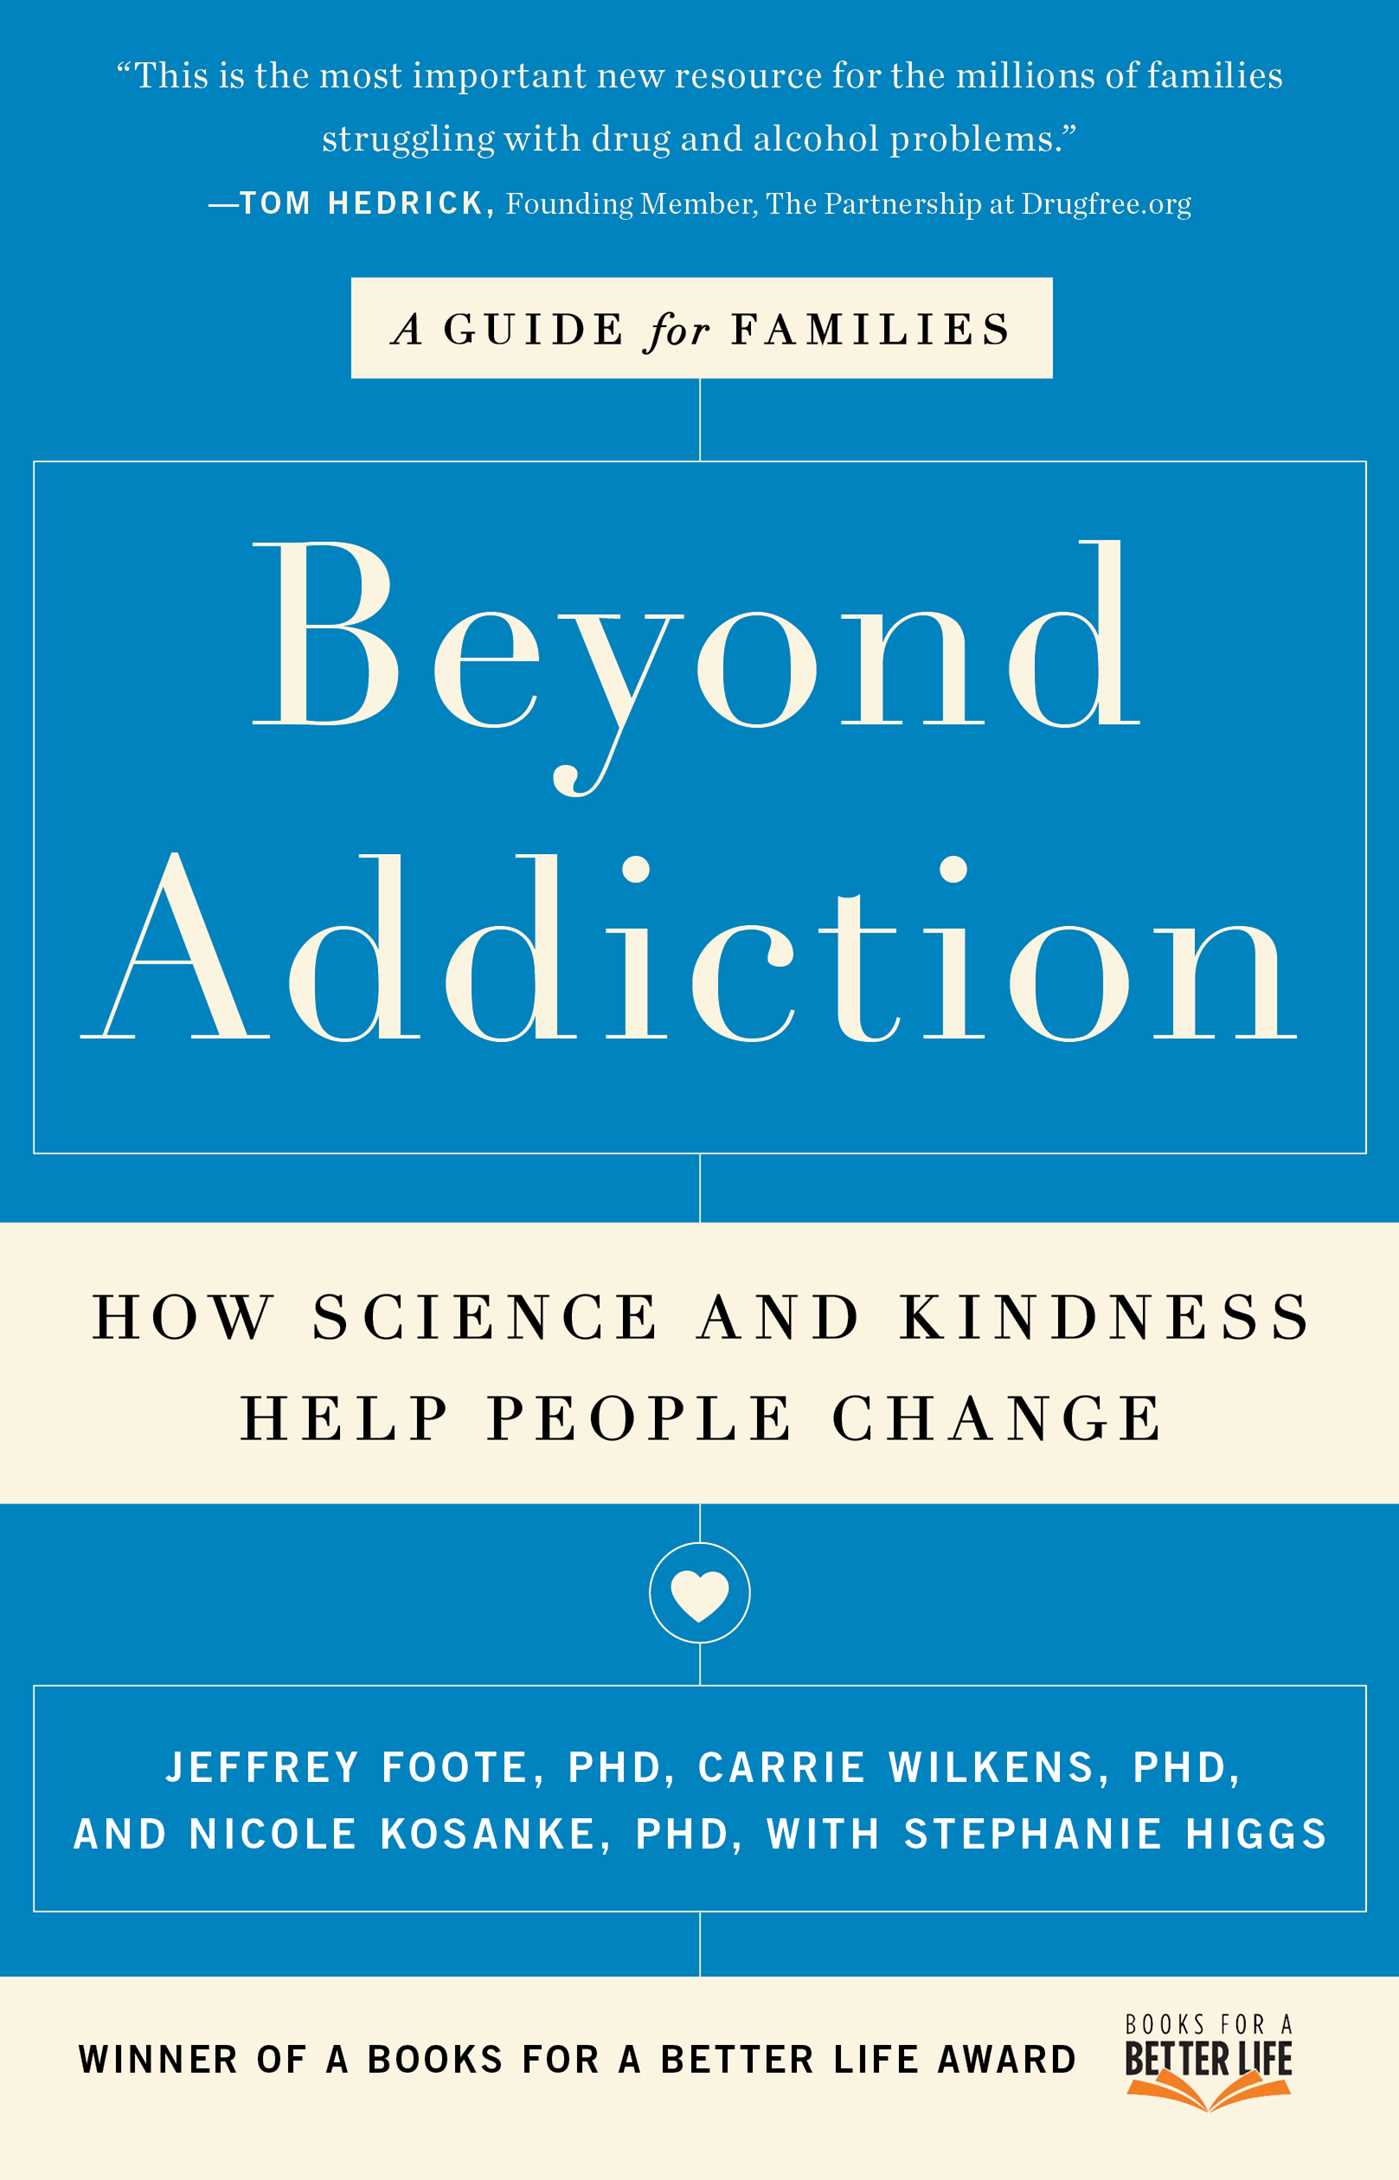 Beyond-addiction-9781476709482_hr